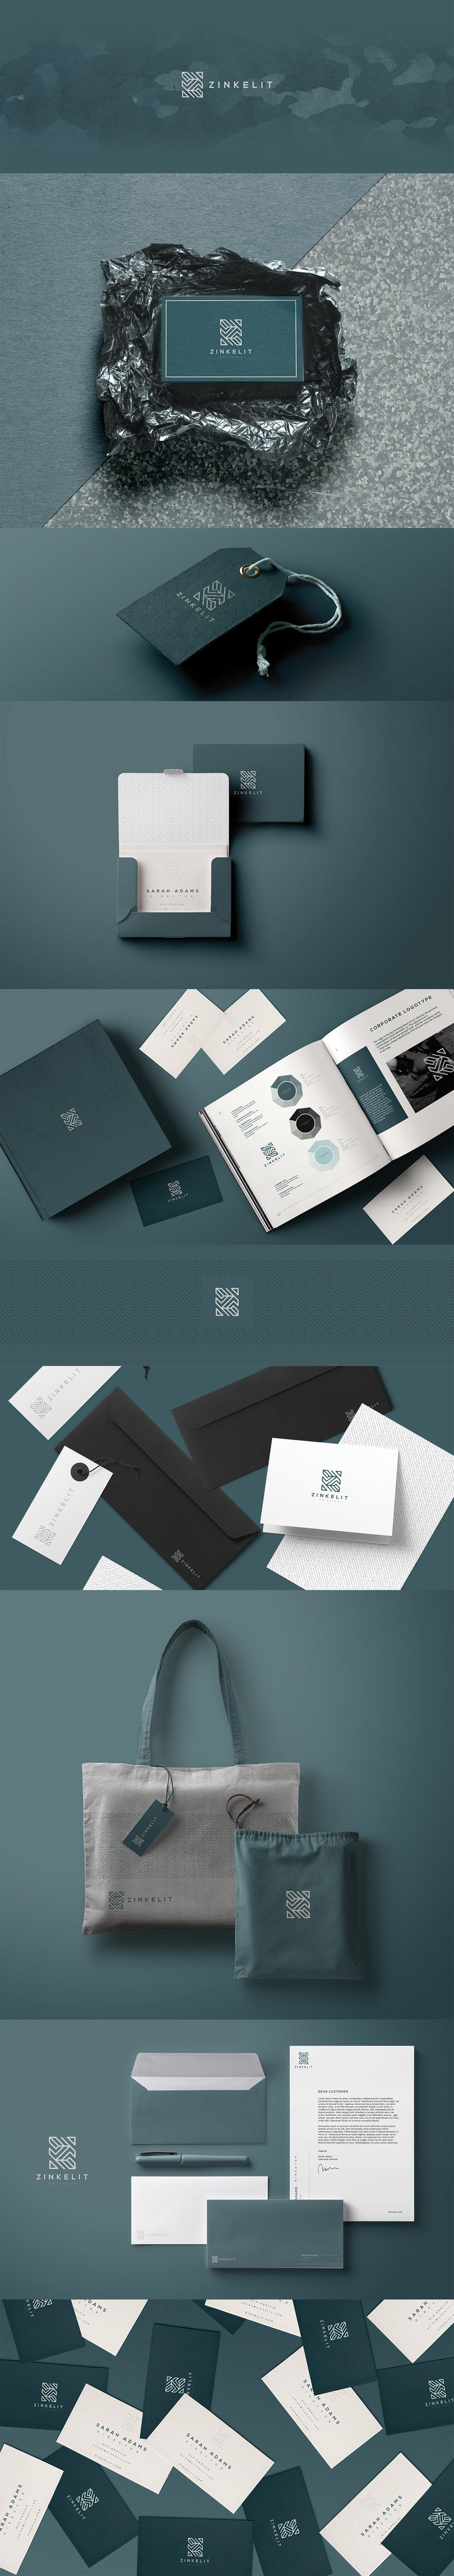 Brand Identity design by kapor - 106222